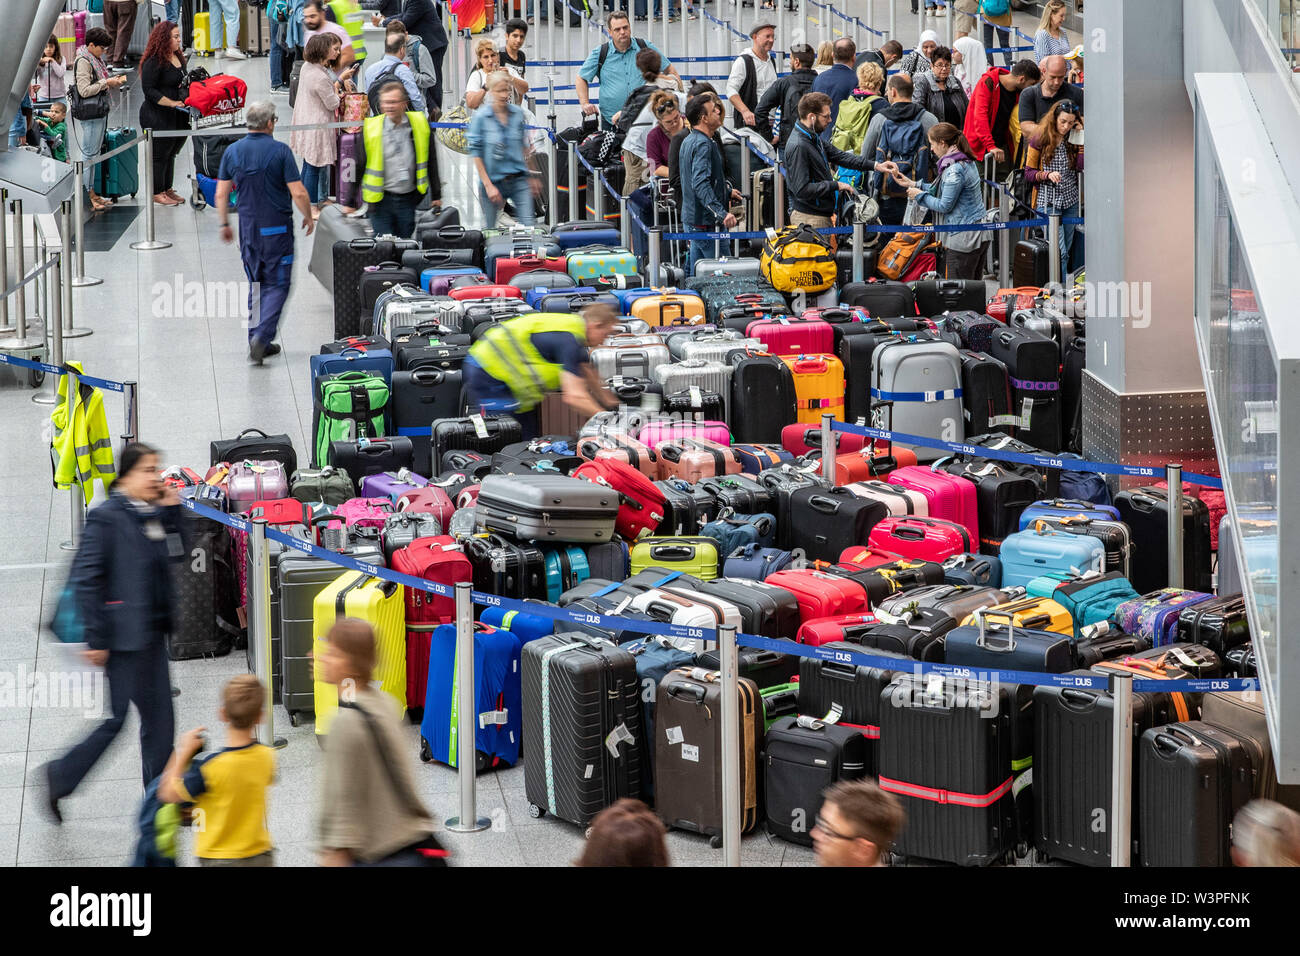 Duesseldorf, Germany. 17th July, 2019. Several hundred pieces of luggage are standing in the departure hall of Düsseldorf Airport. Due to a technical malfunction, passengers at Düsseldorf Airport had to adjust to problems with baggage handling. Credit: Marcel Kusch/dpa/Alamy Live News - Stock Image